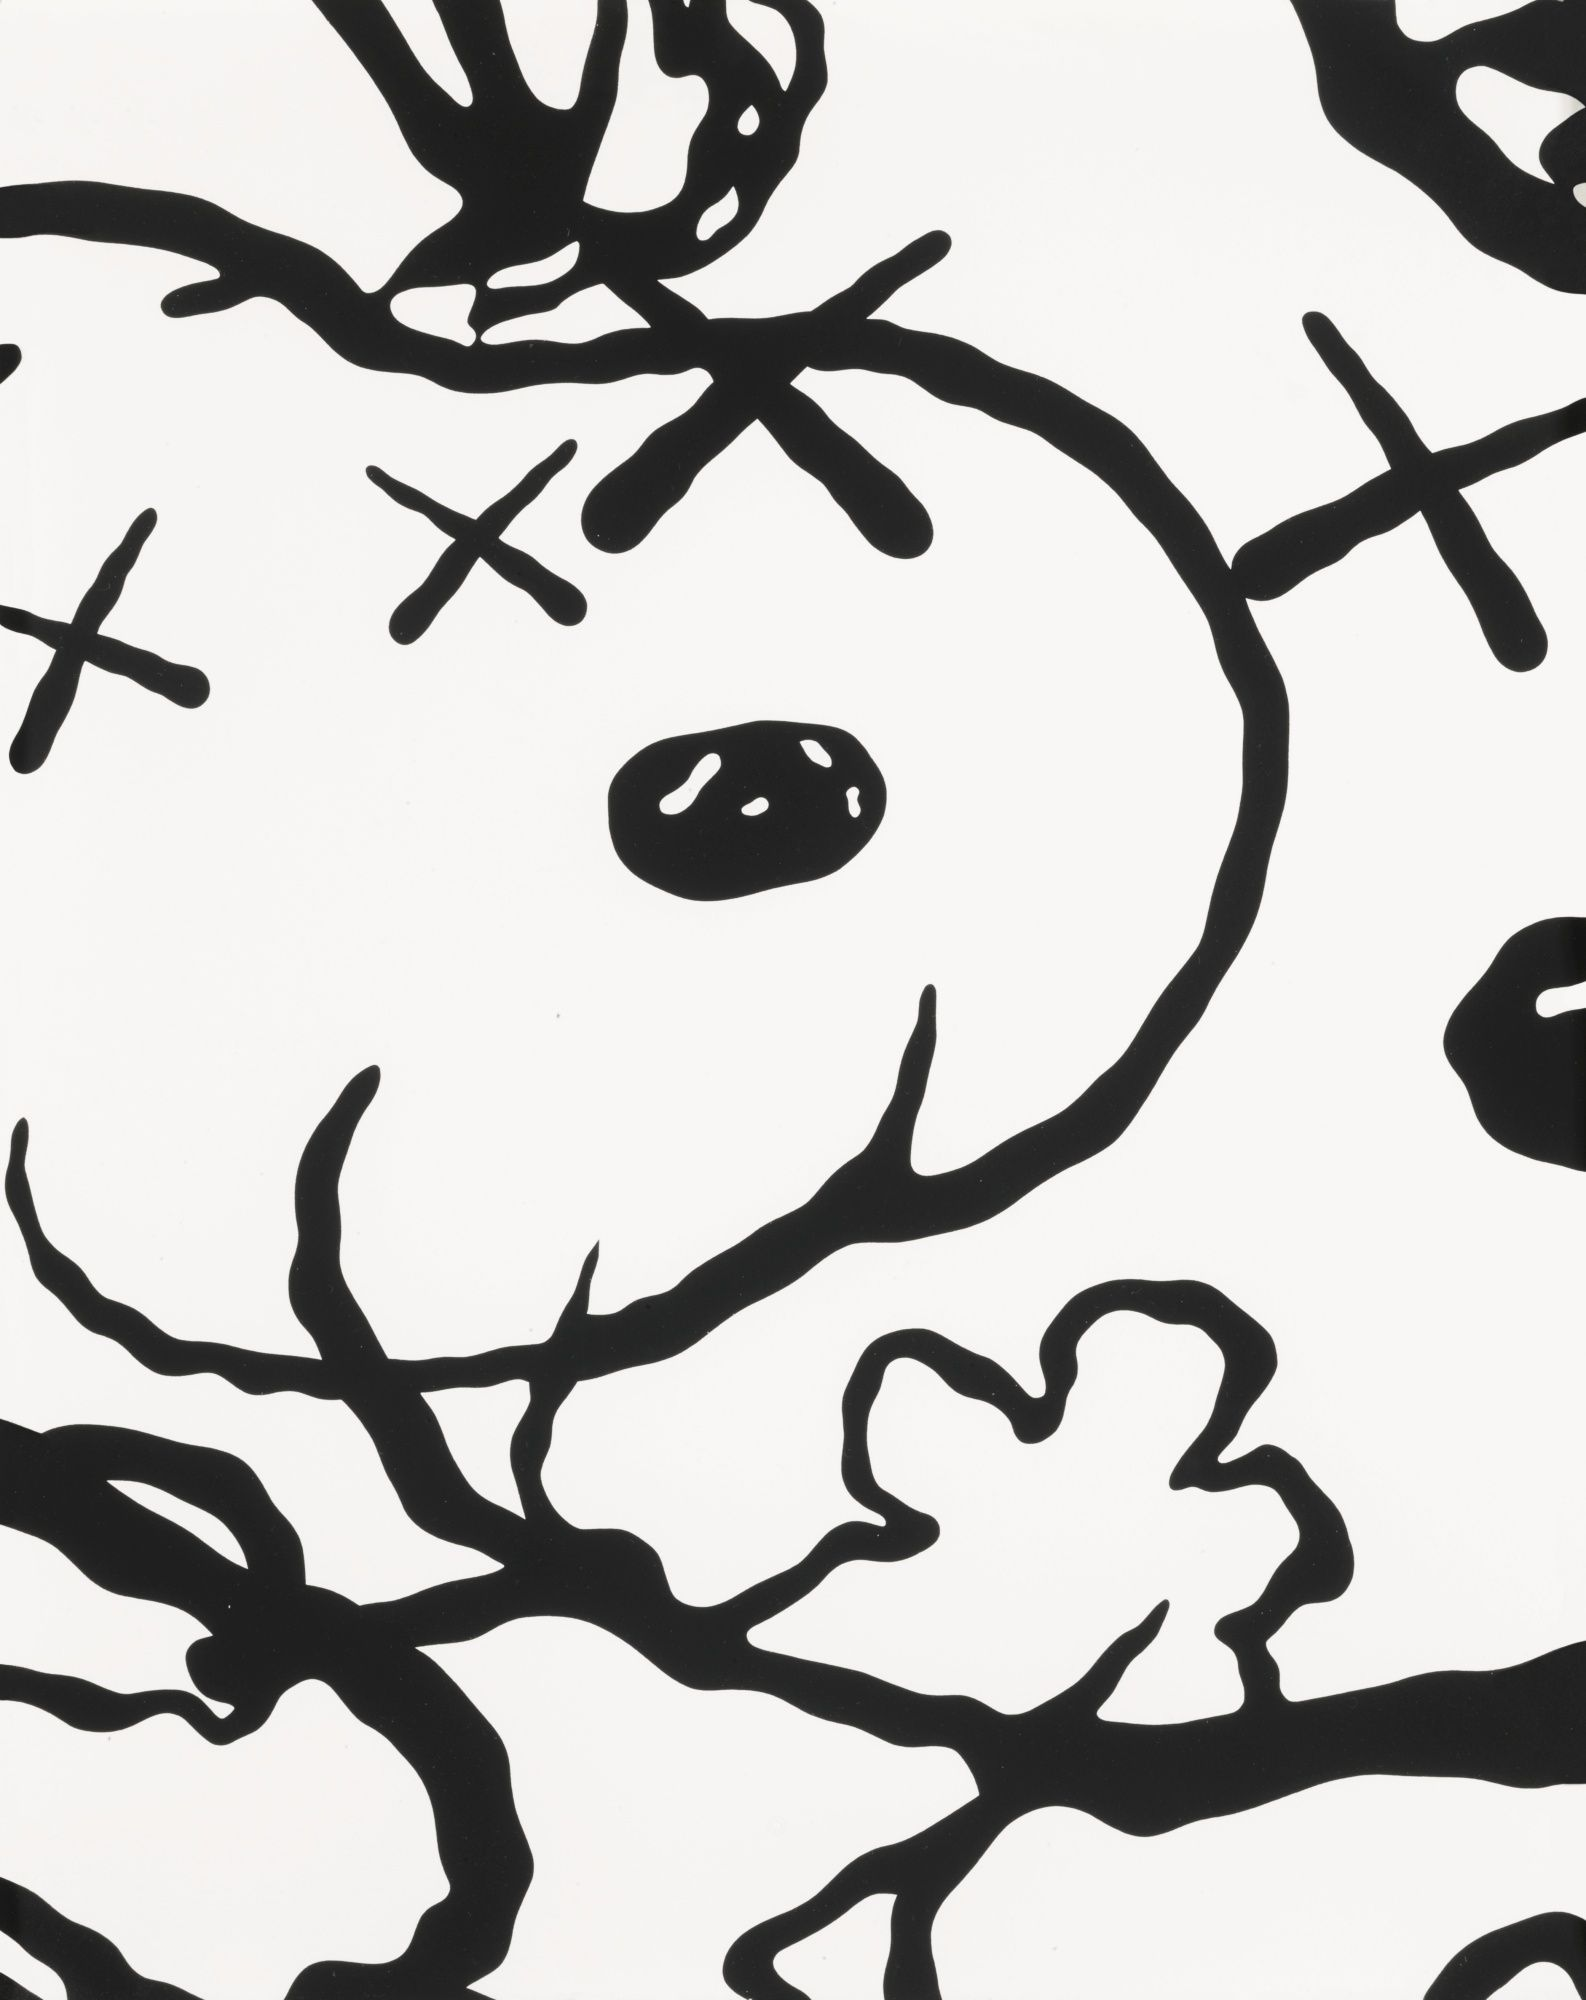 Kaws Snoopy Wallpapers Top Free Kaws Snoopy Backgrounds Wallpaperaccess